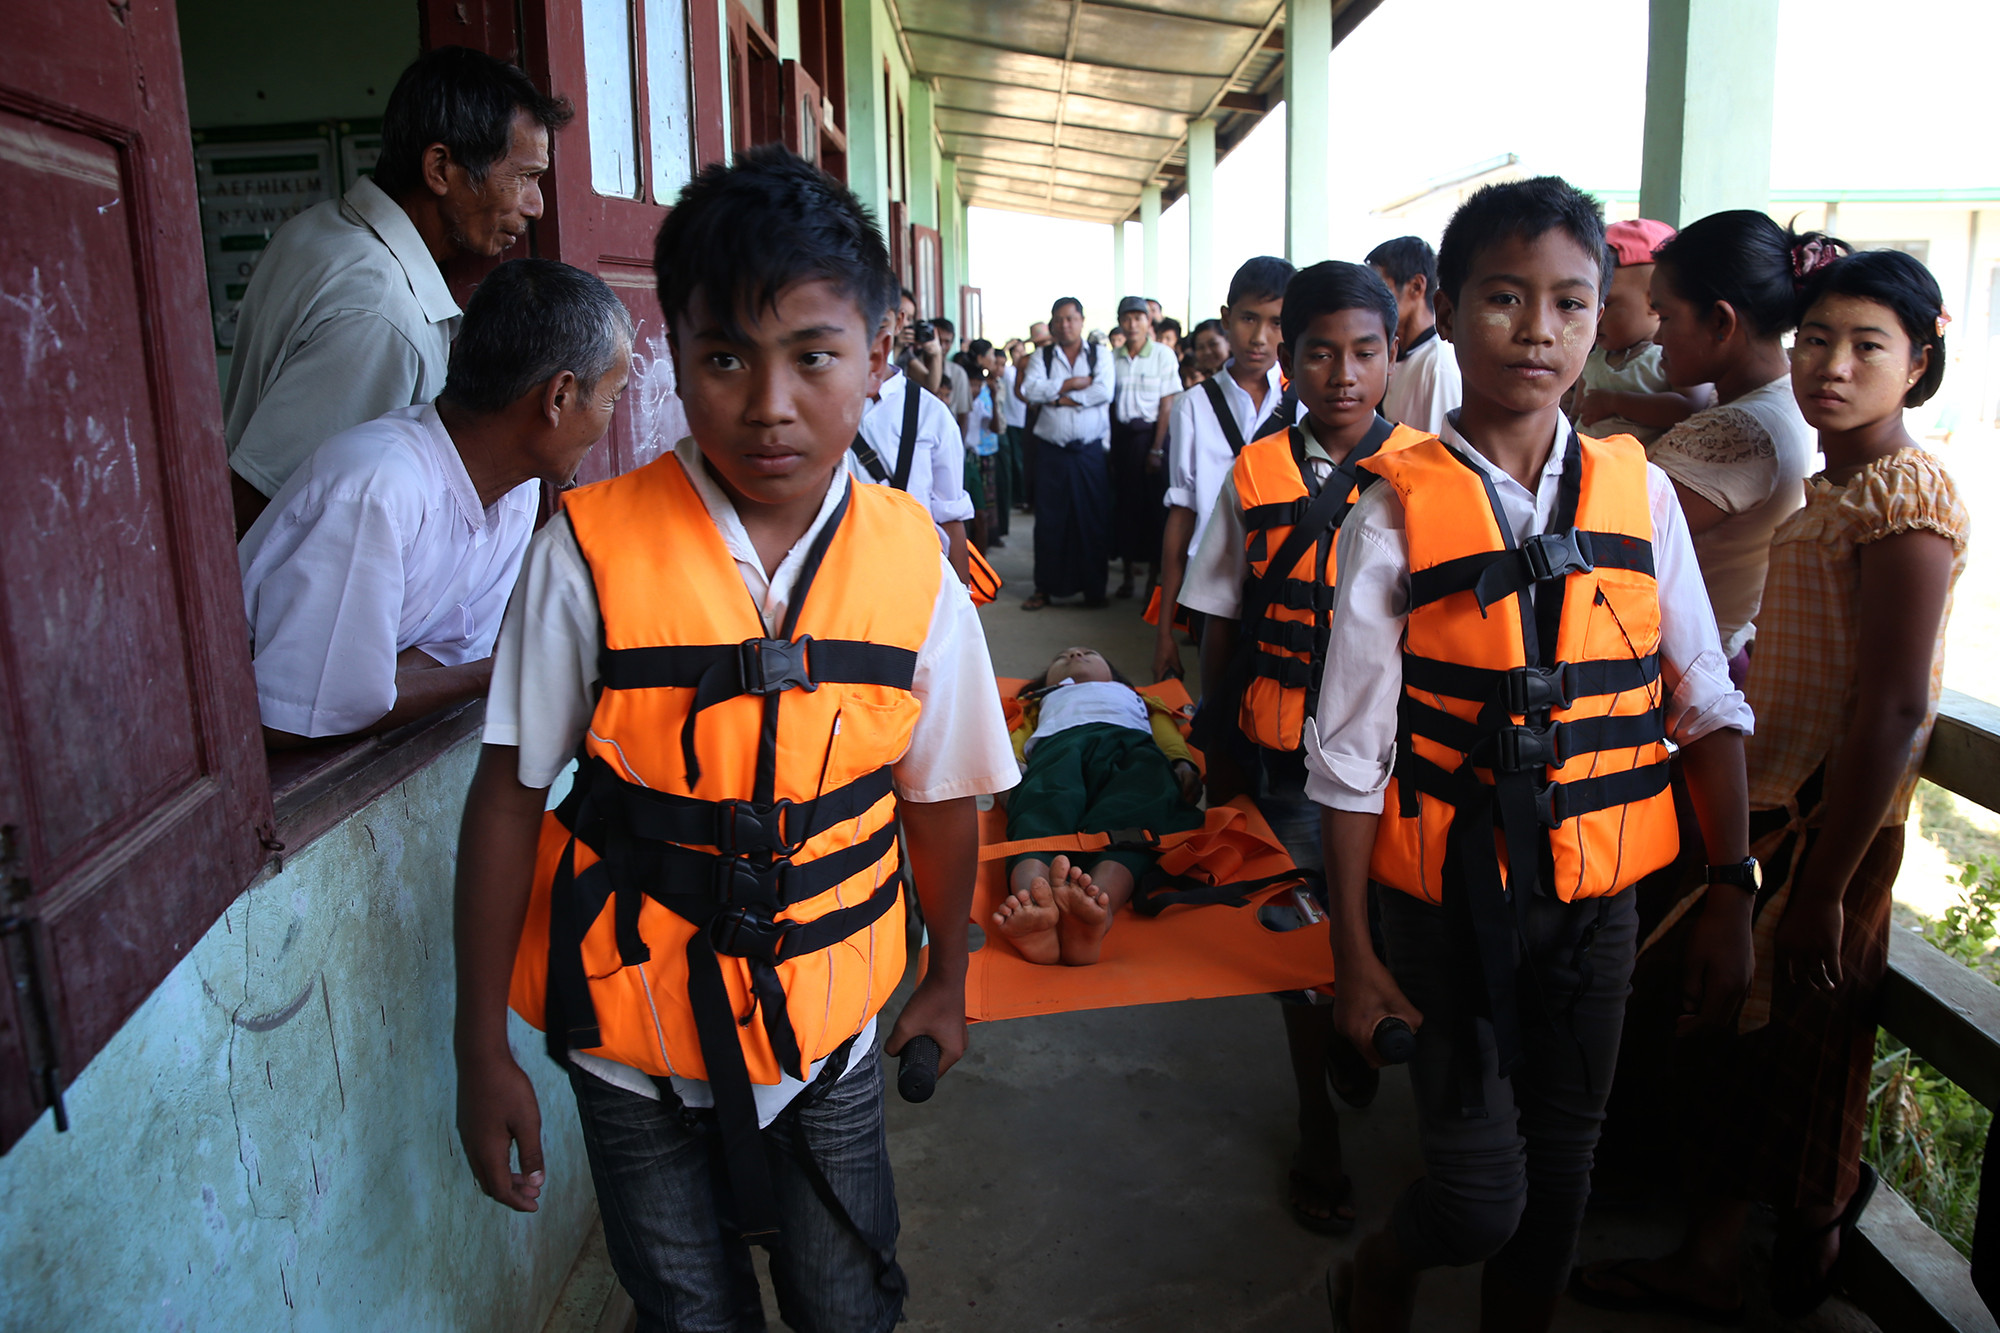 School children practice their search and rescue skills to prepare for disasters